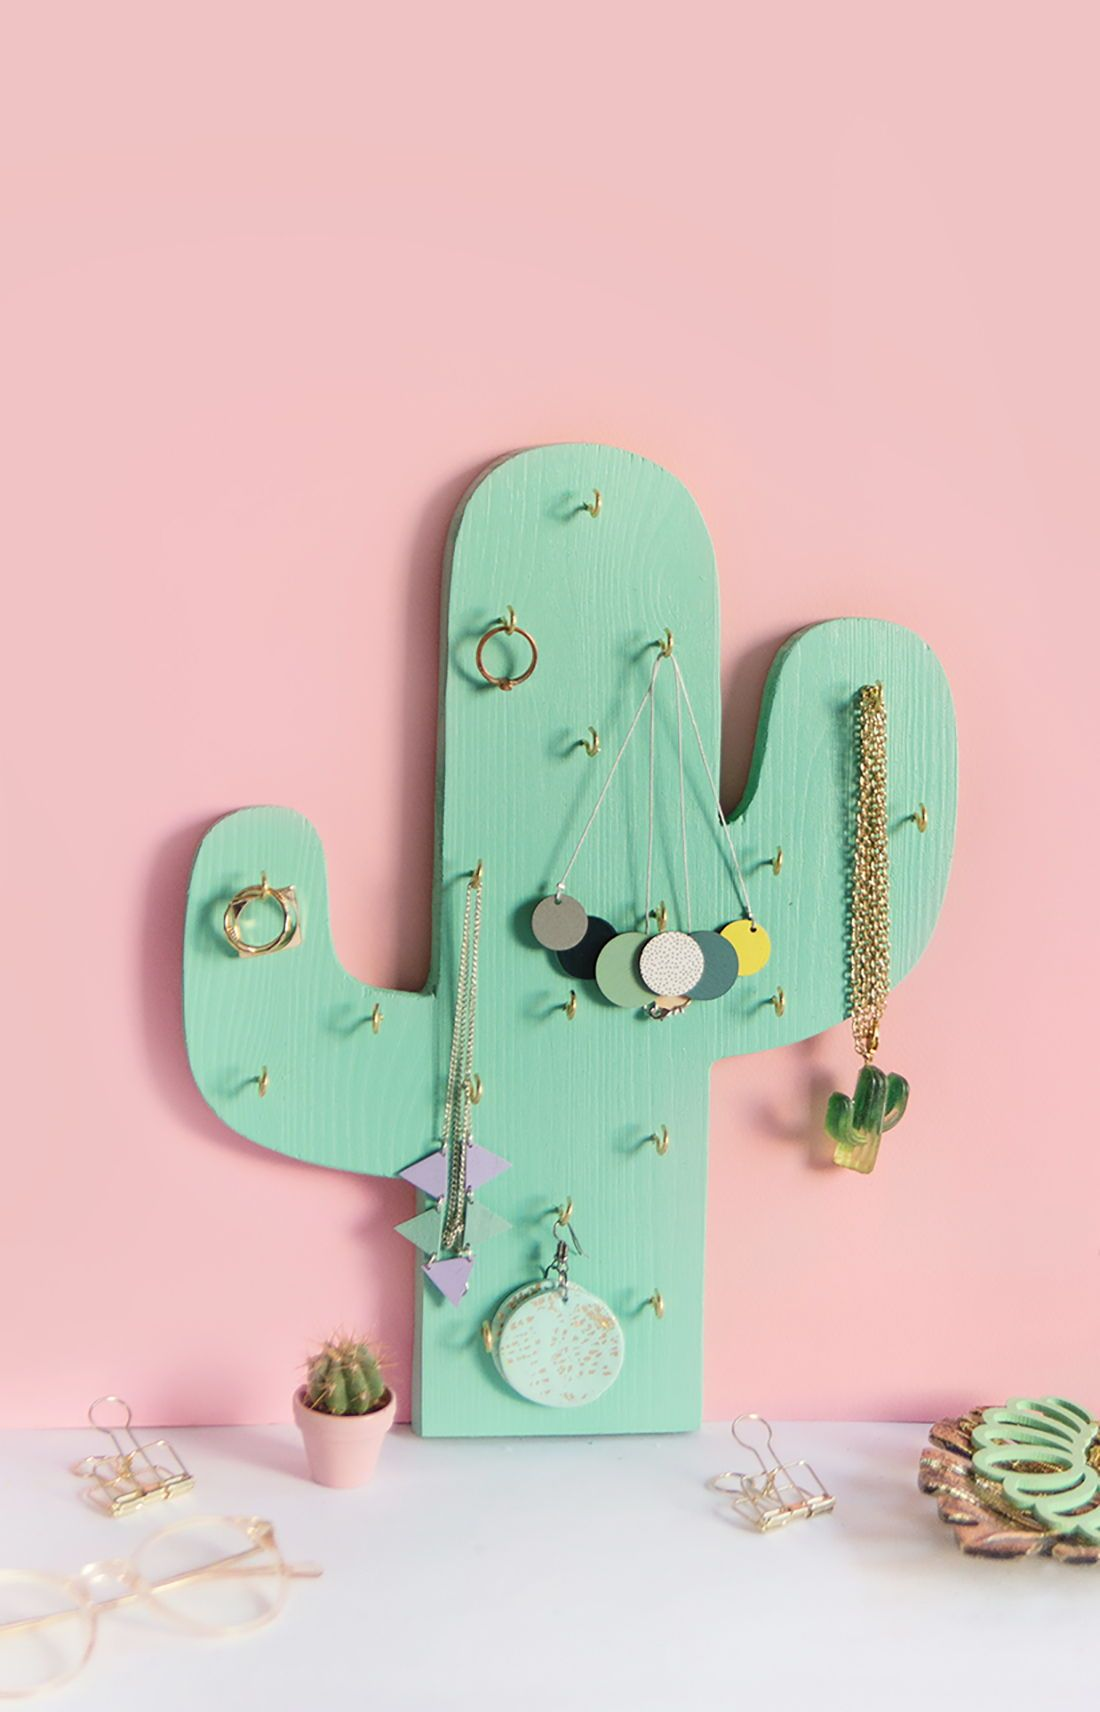 Photo of DIY: DIY jewelry holder cactus from wood | my fairy dust